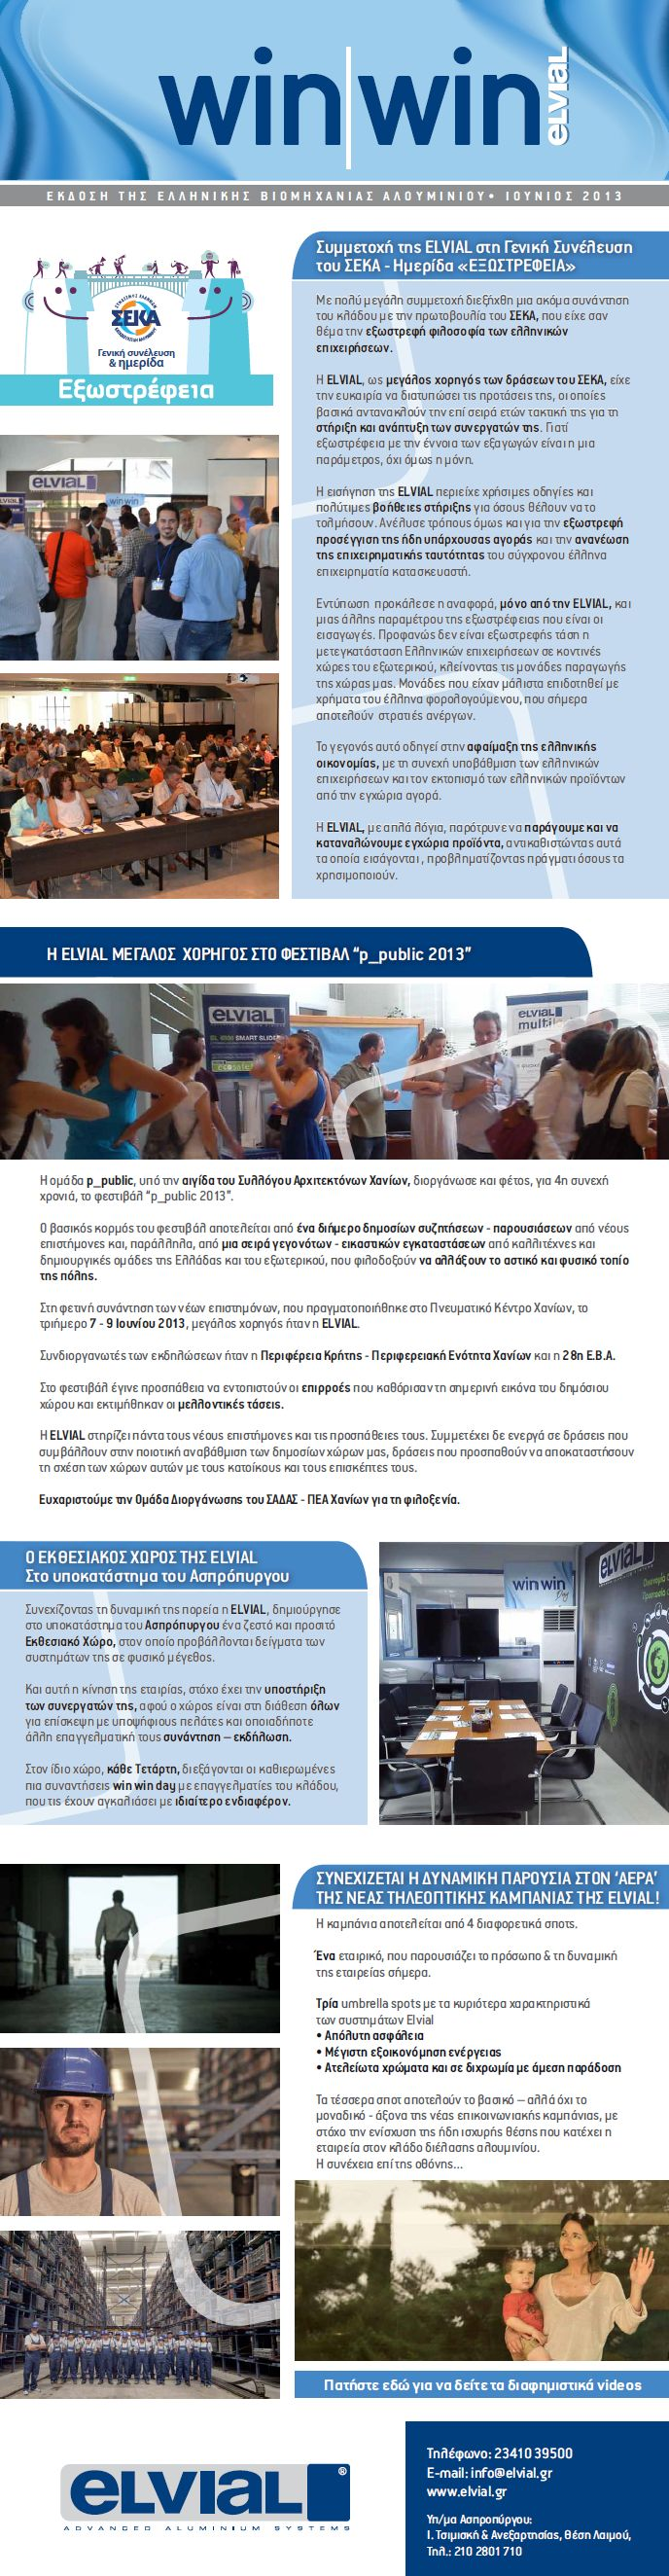 ELVIAL - ALUMINIUM SYSTEMS, newsletter design & development